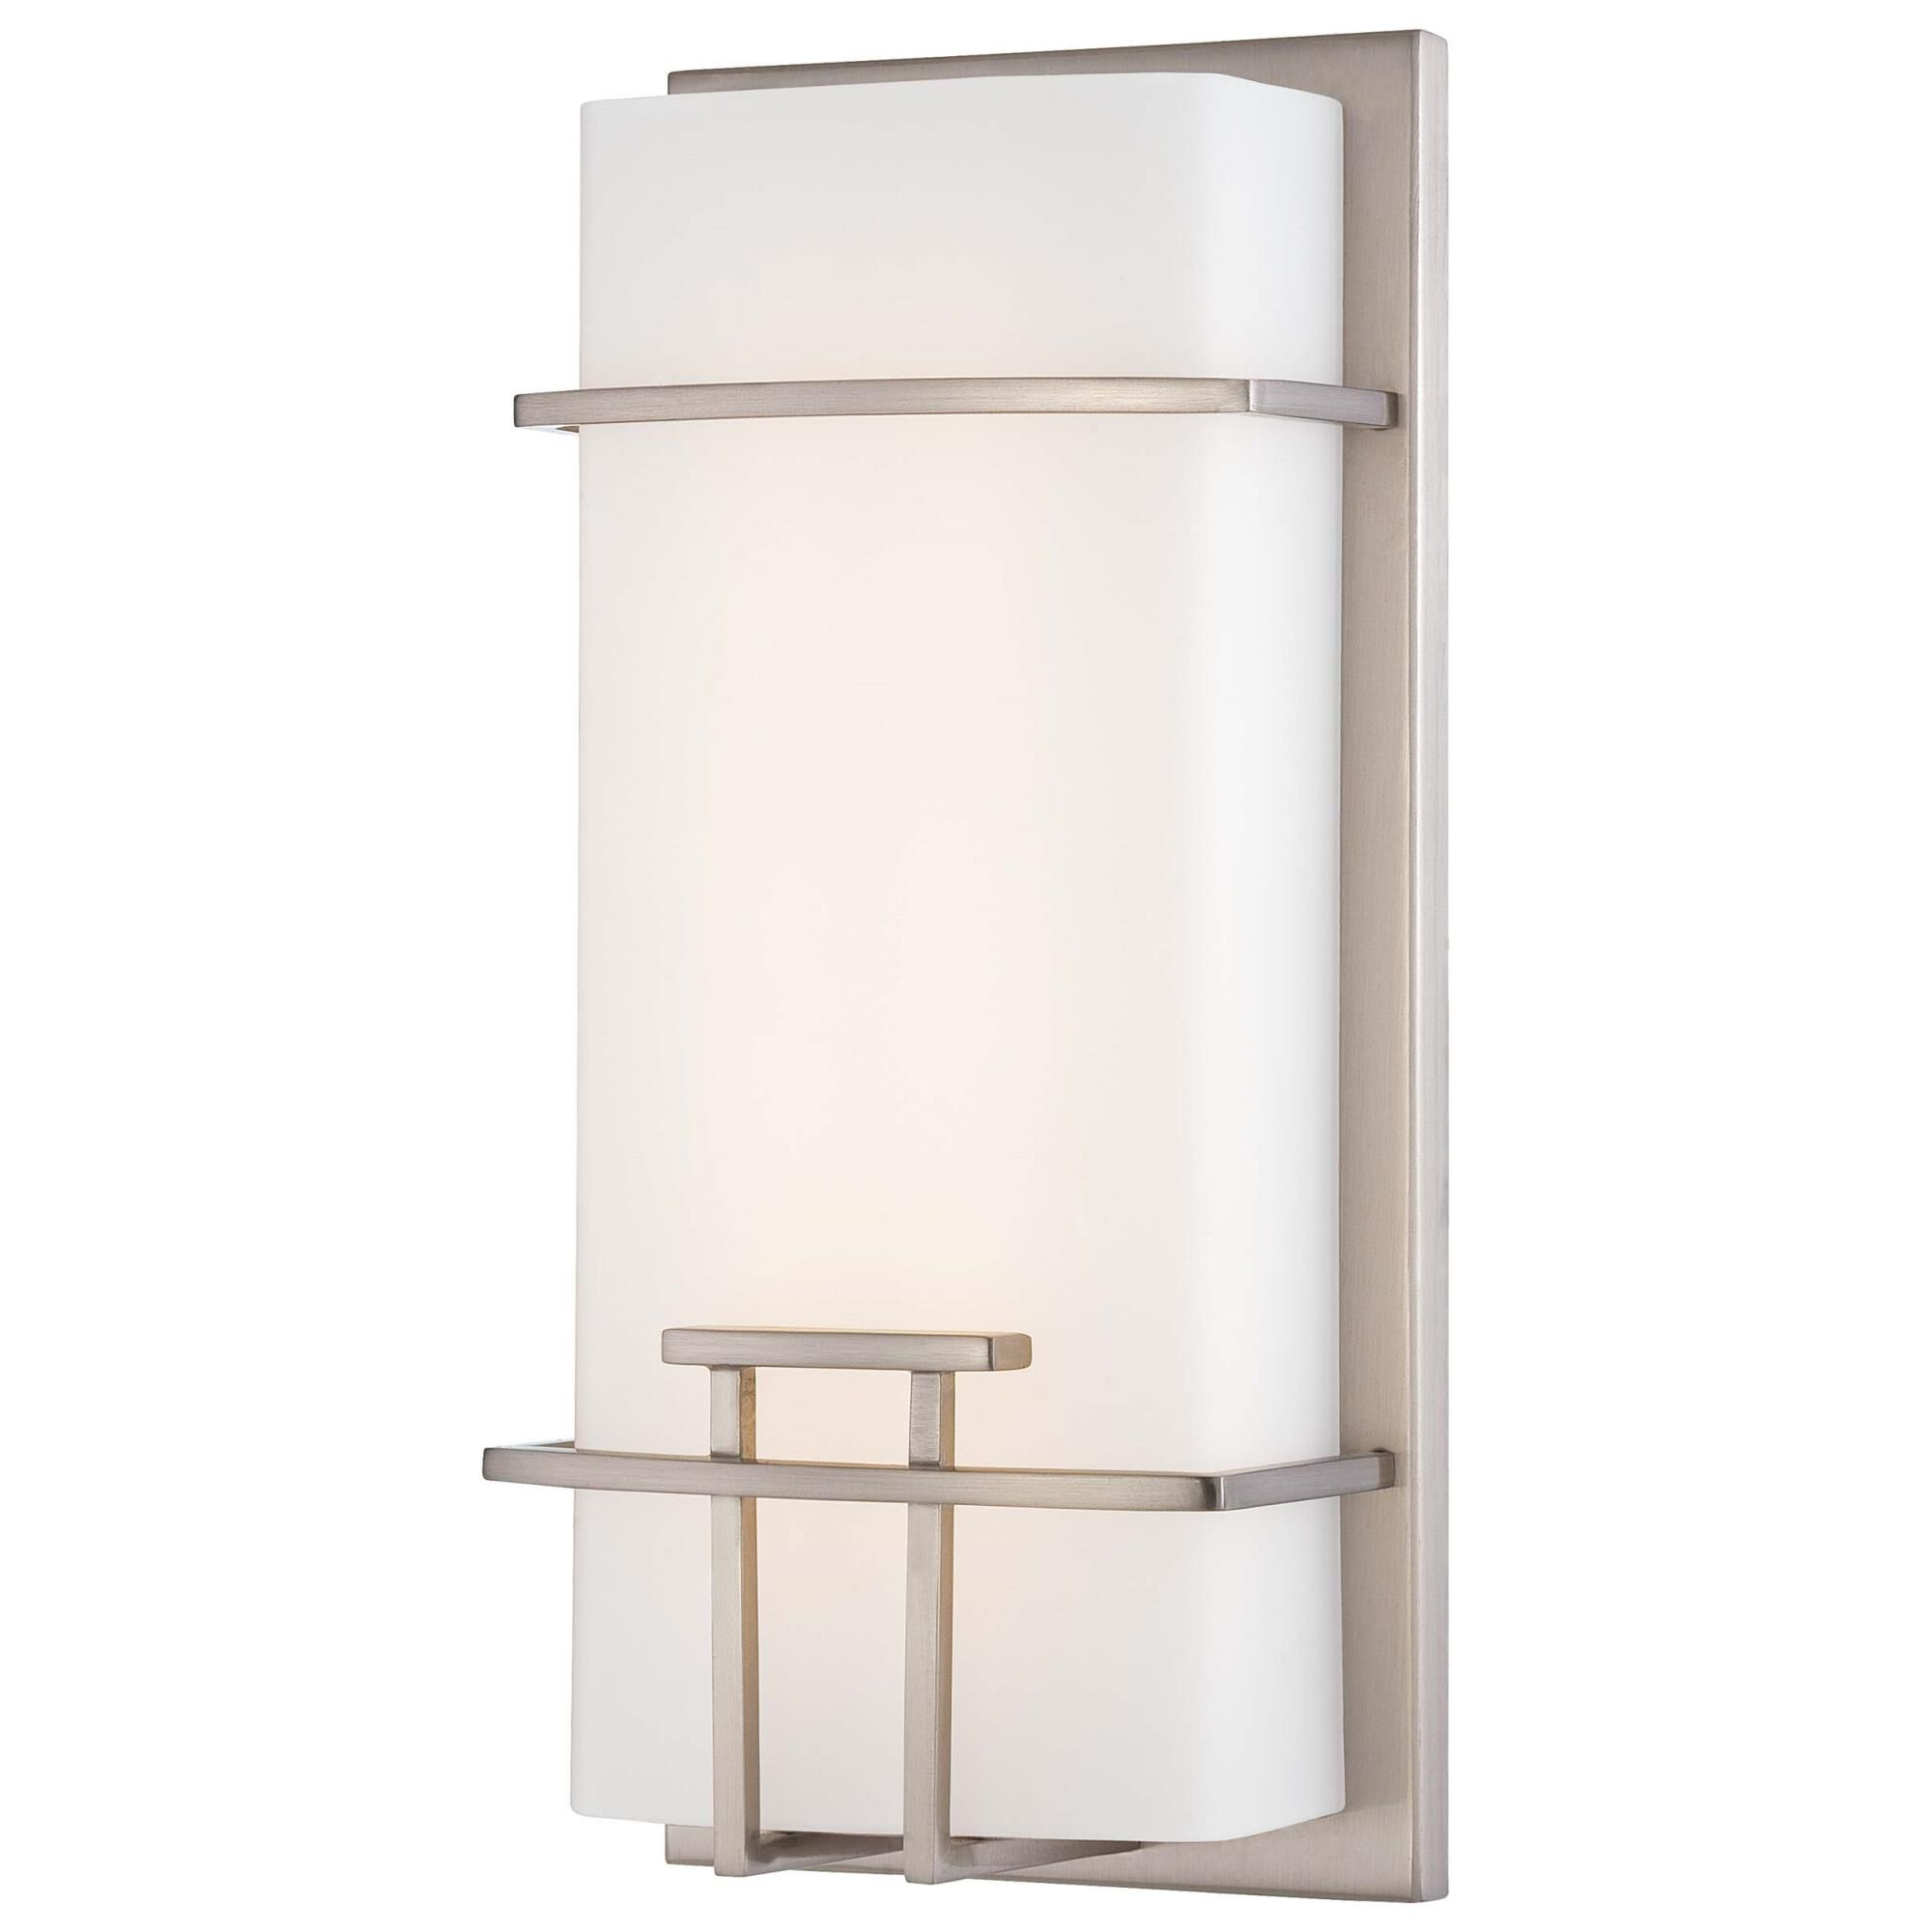 Kovacs 12 Inch Wall Sconce - P465-084-l - Modern Contemporary